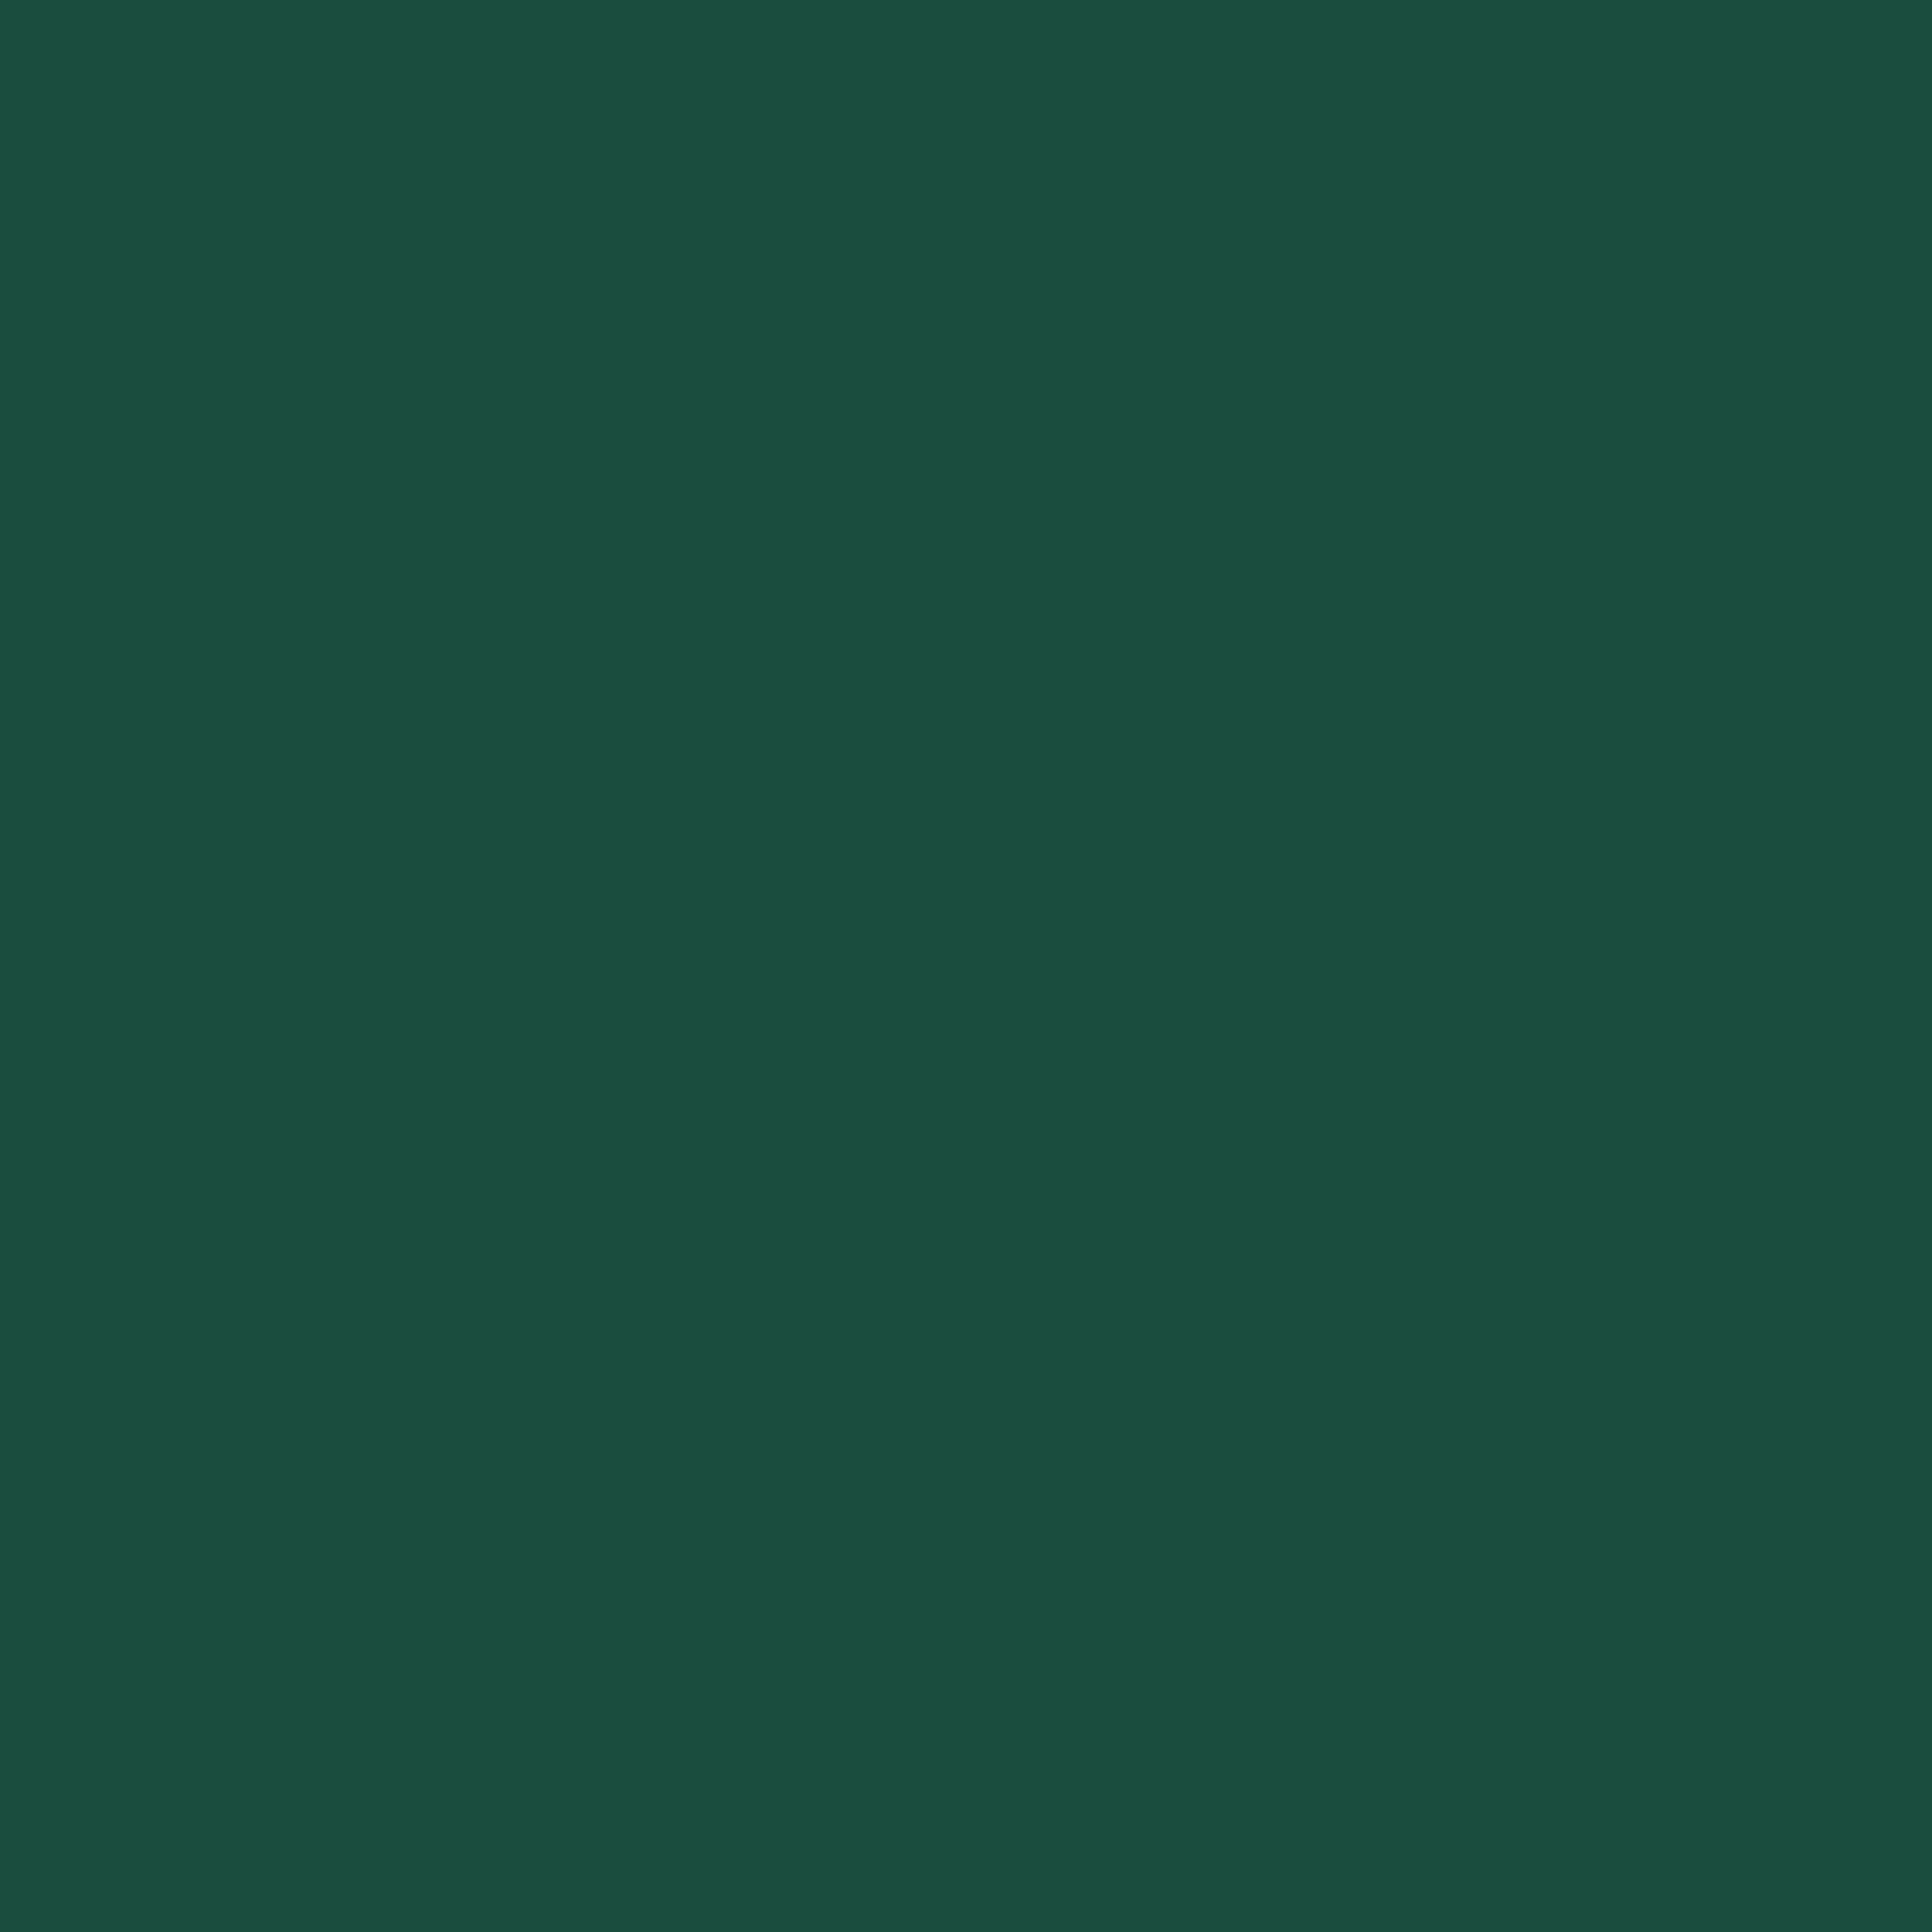 2048x2048 Brunswick Green Solid Color Background